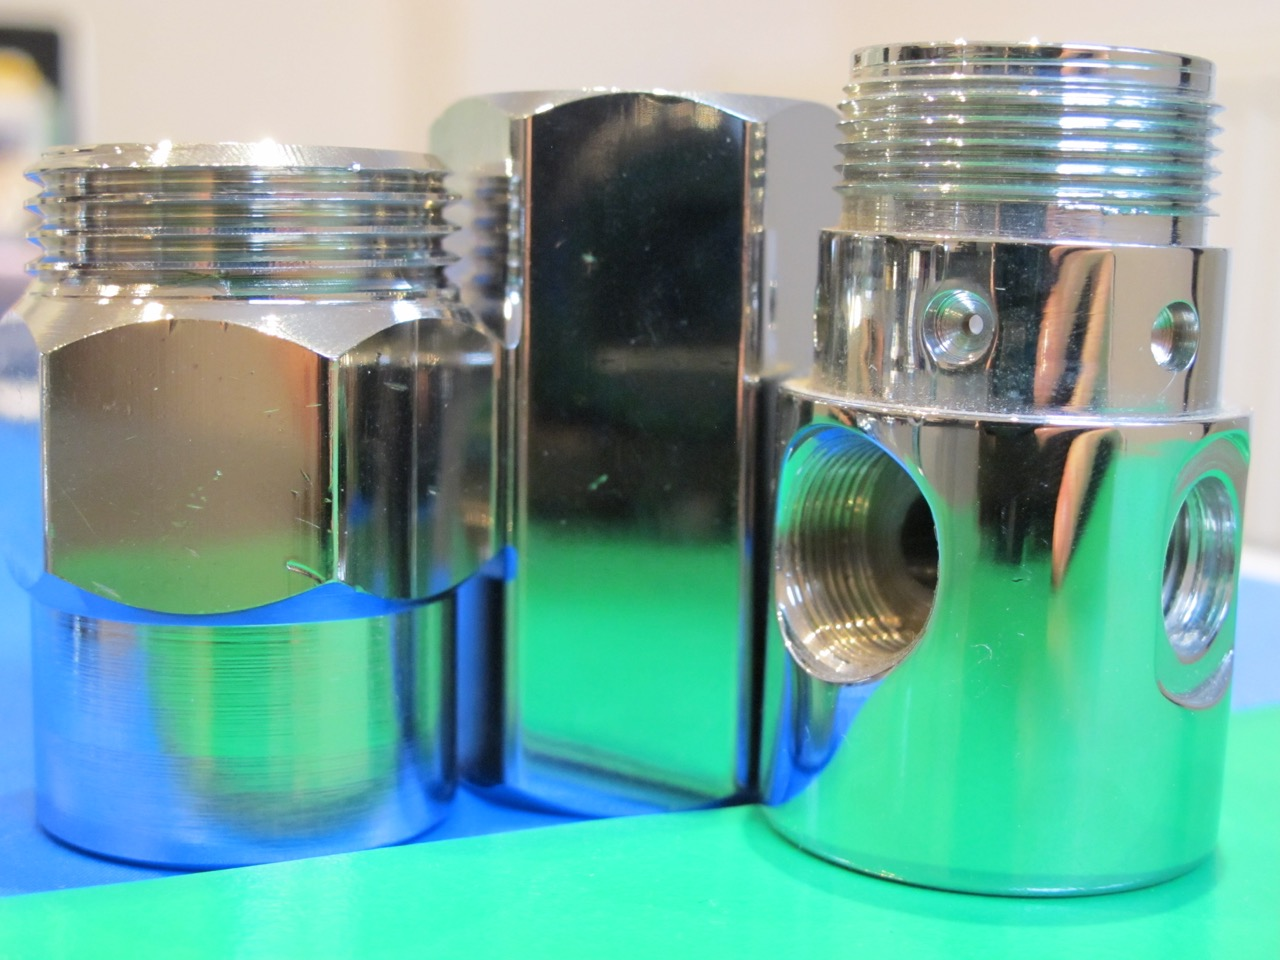 Different types and shapes of nickel electroplated objects